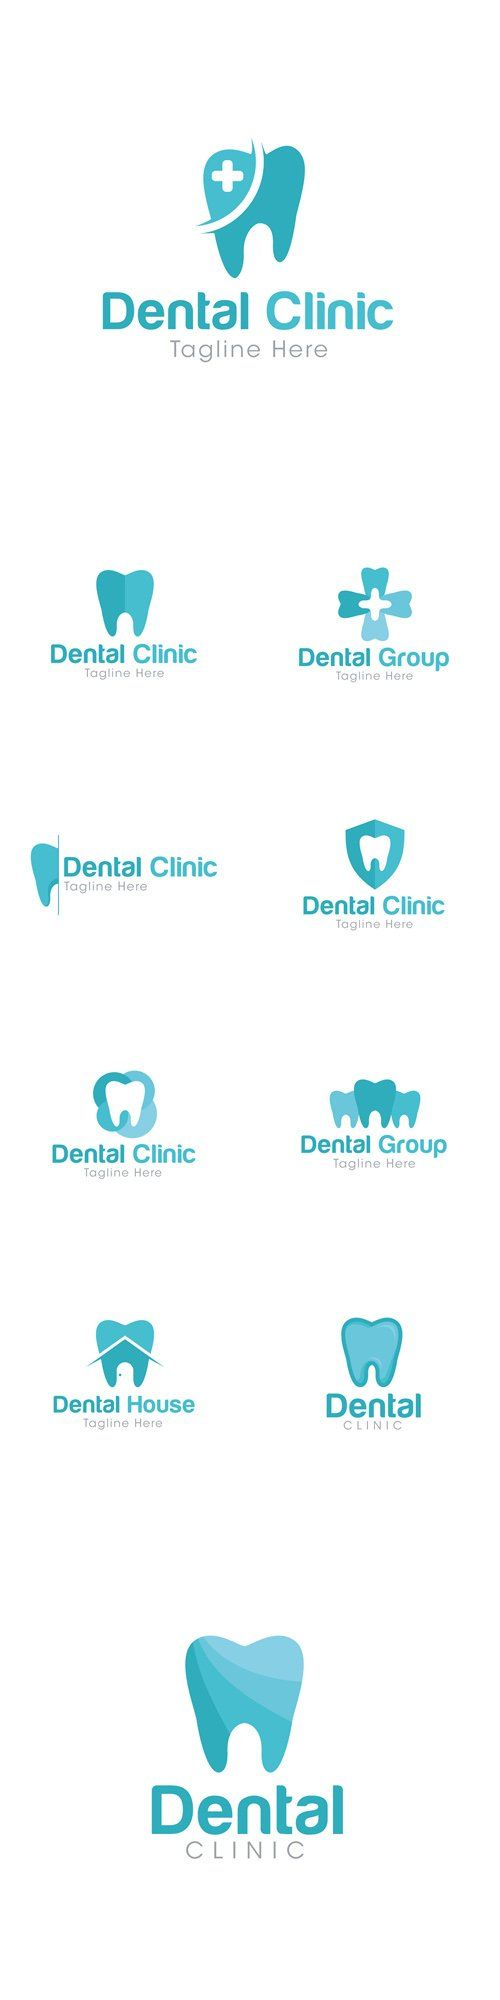 dental care logo design branding identity dental clinic